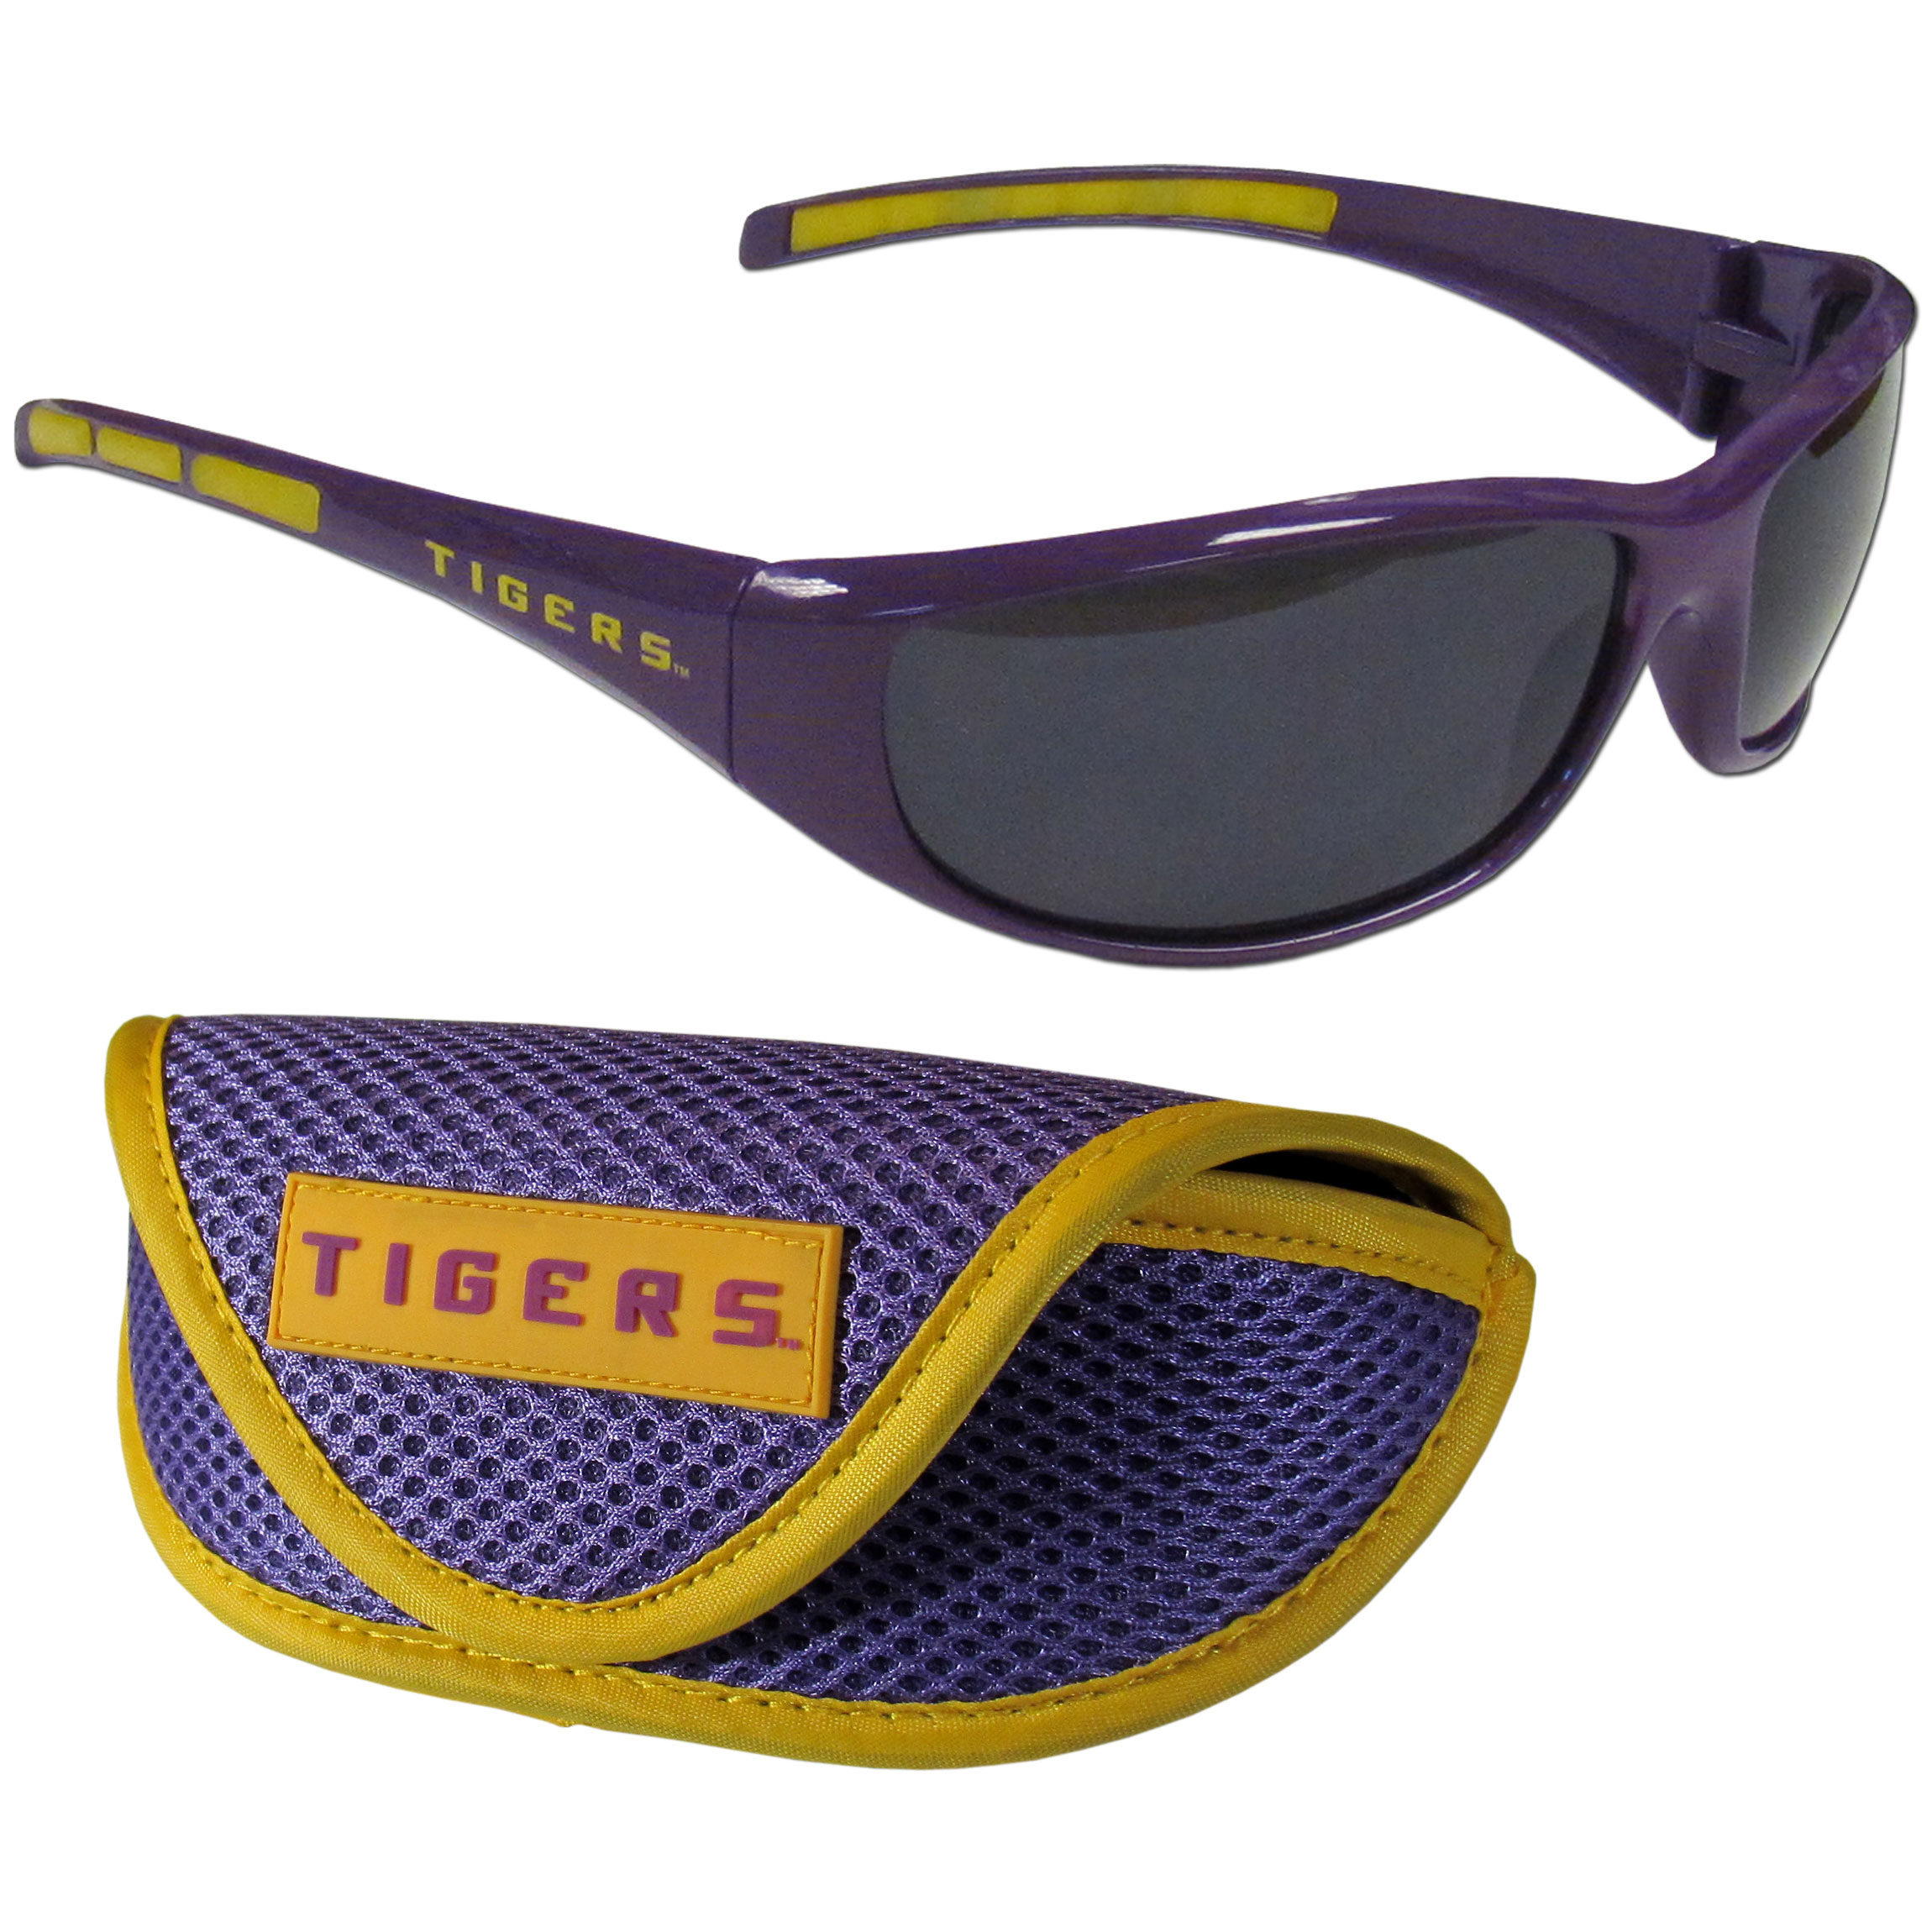 LSU Tigers Wrap Sunglass and Case Set - This great set includes a high quality pair of LSU Tigers wrap sunglasses and soft sport carrying case.